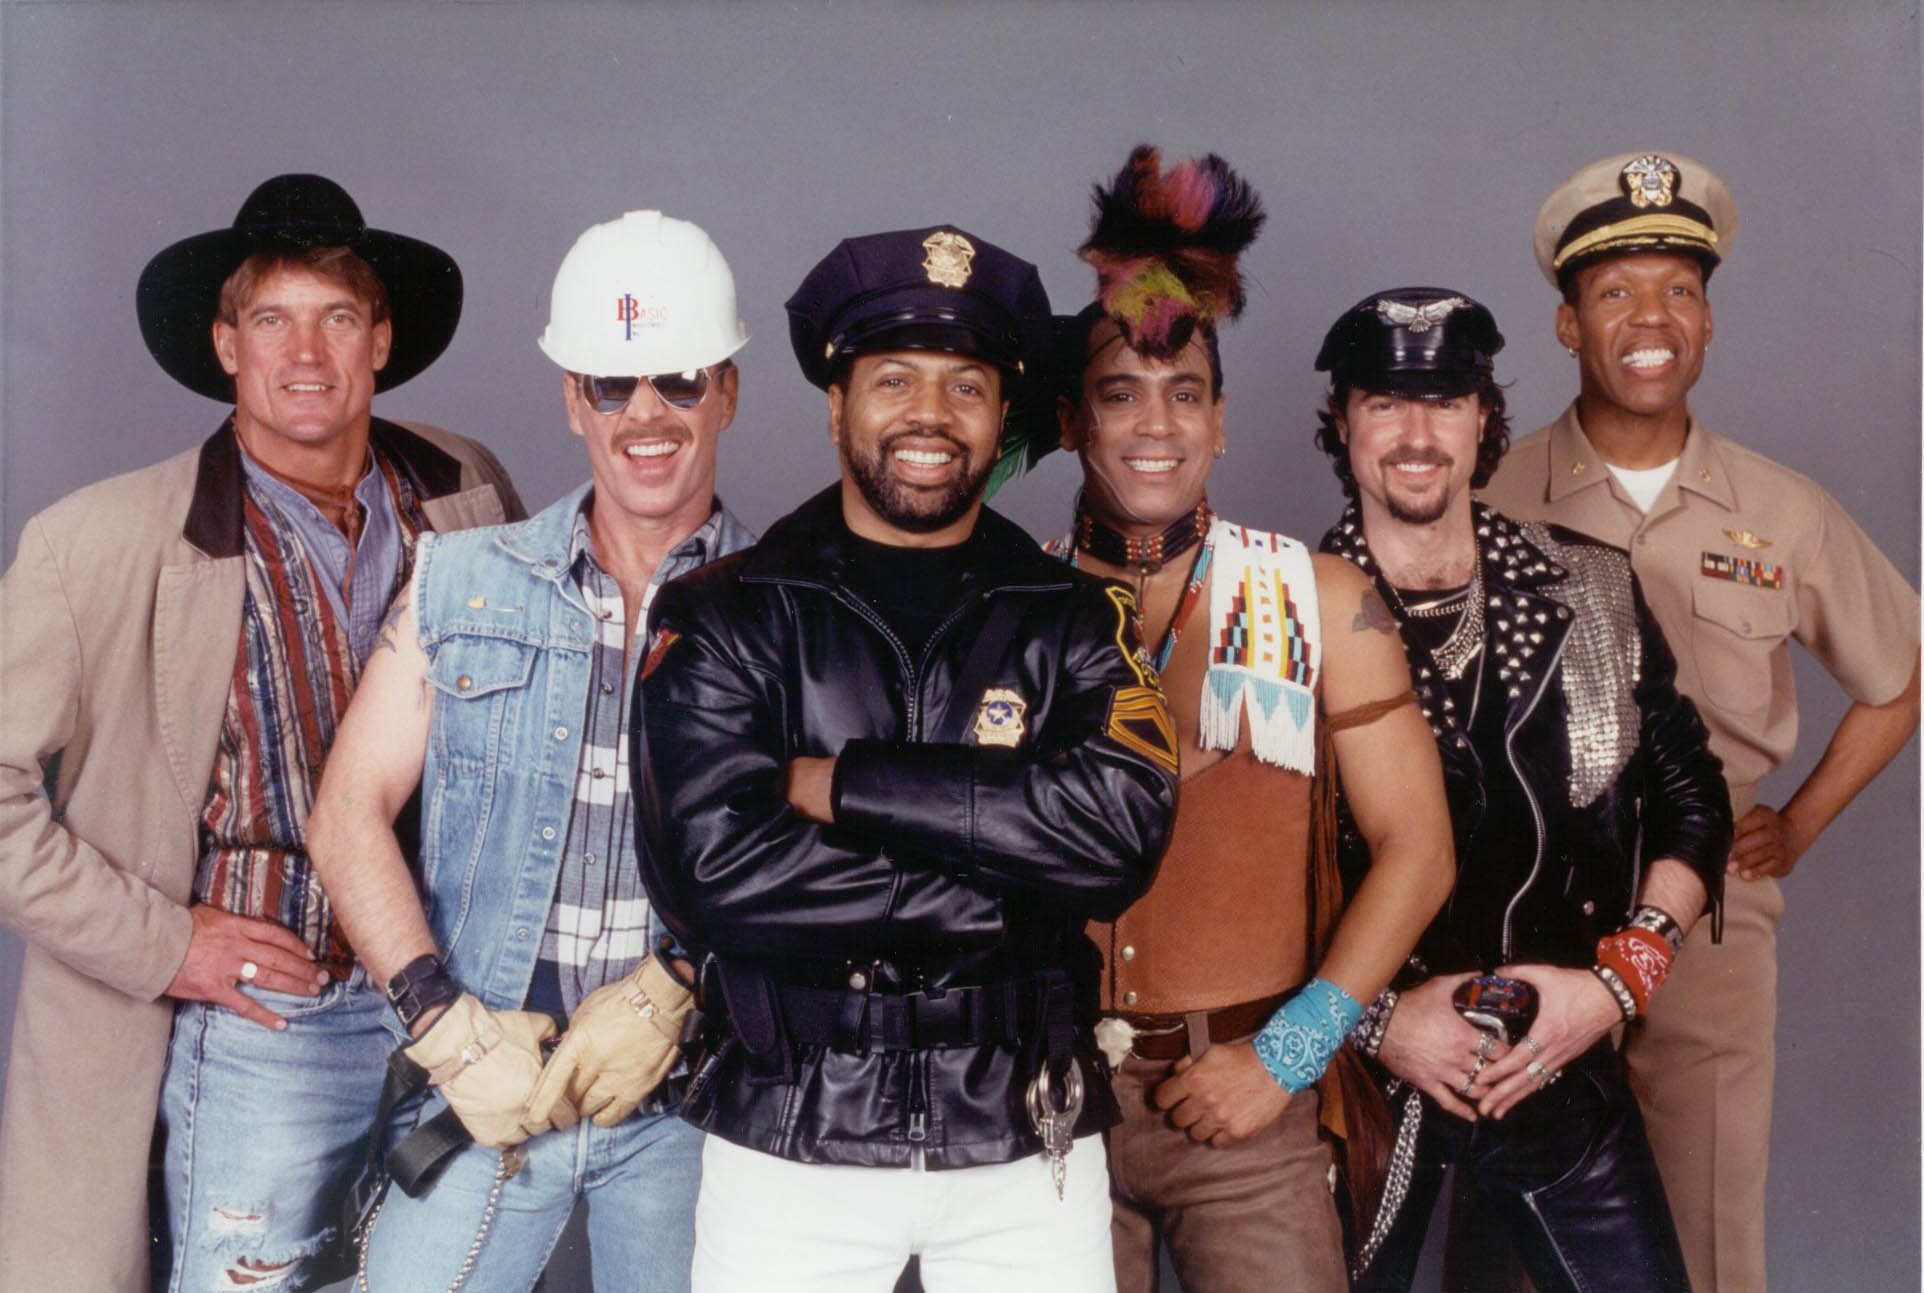 http://girlinczechland.files.wordpress.com/2010/05/village_people_1.jpg